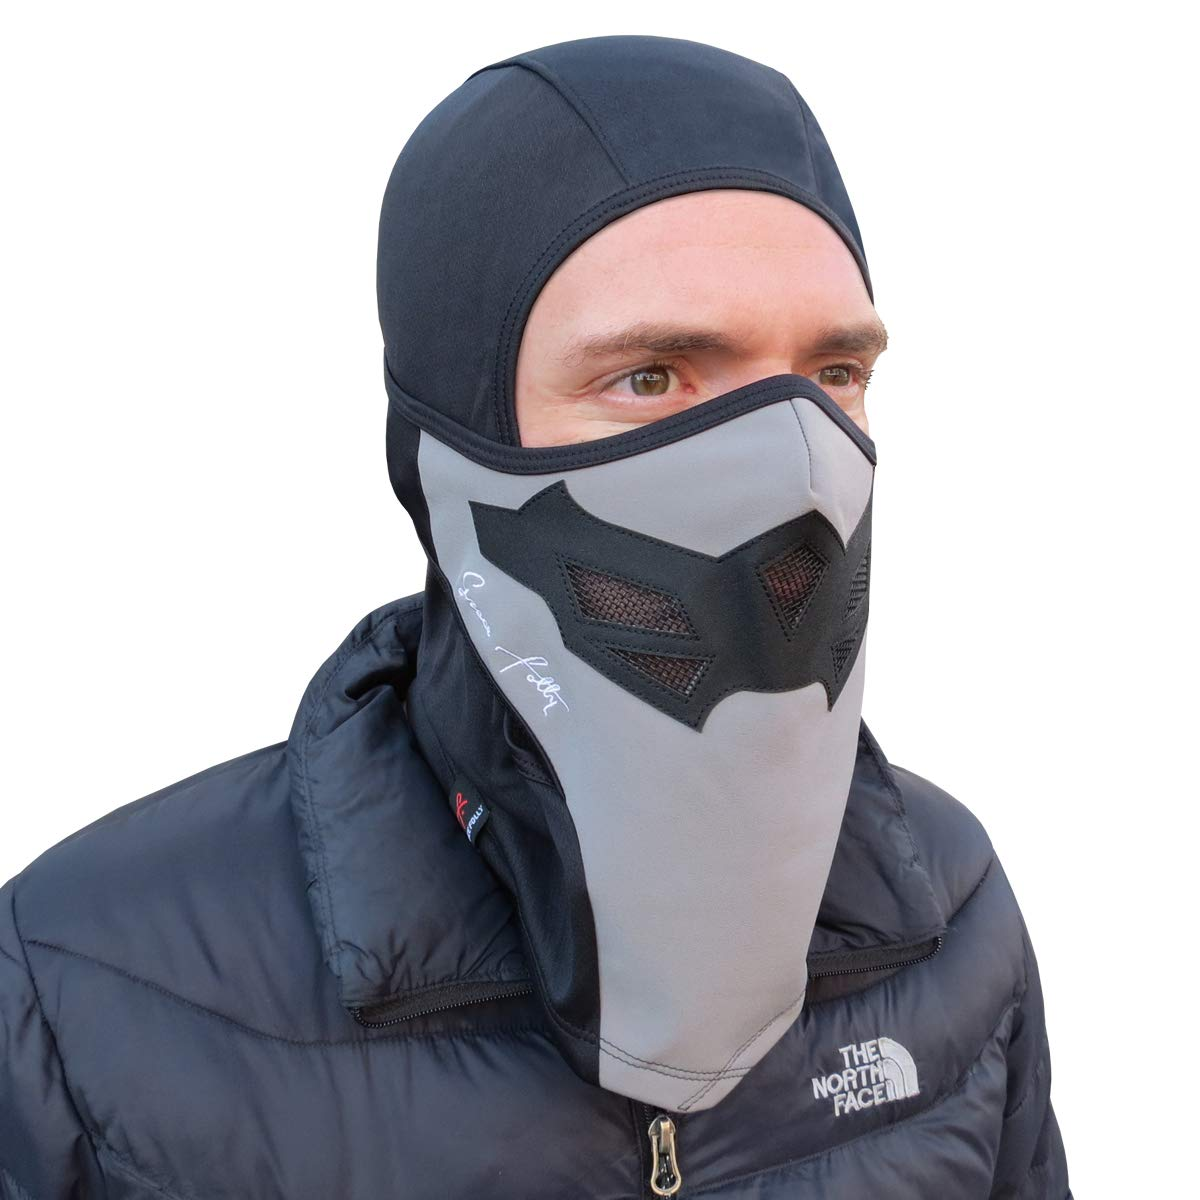 Grace Folly Full Balaclava Ski Face Mask for Snowboarding /& Cold Winter Weather Sports